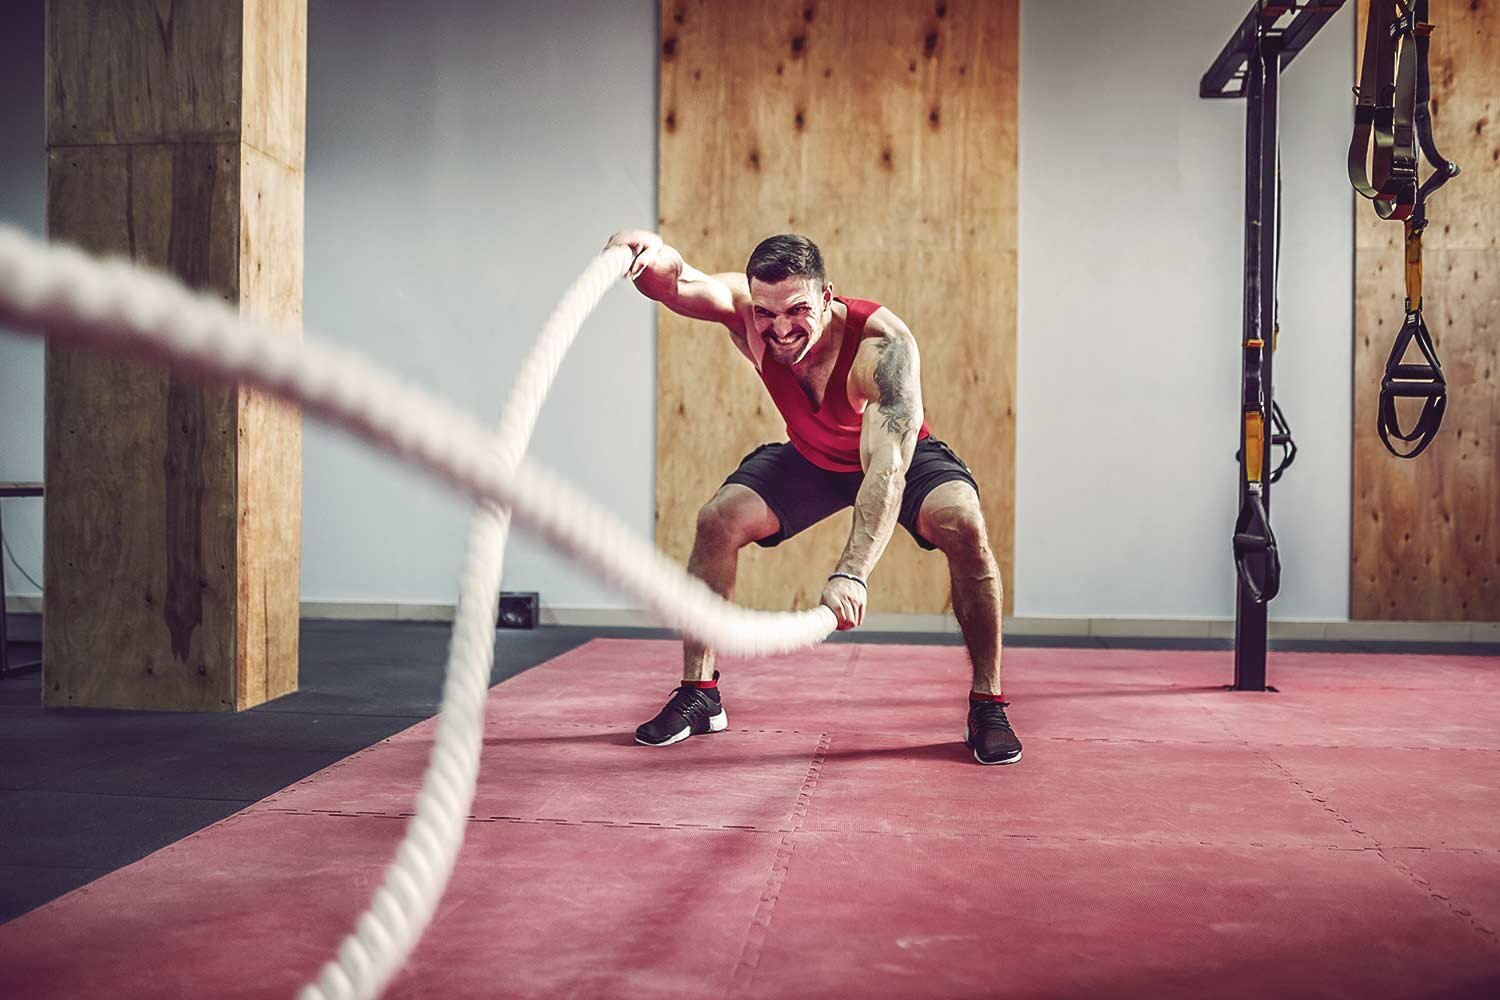 Pillar-content-PHOImportance_-What's-the-point-of-functional-training_-.jpg